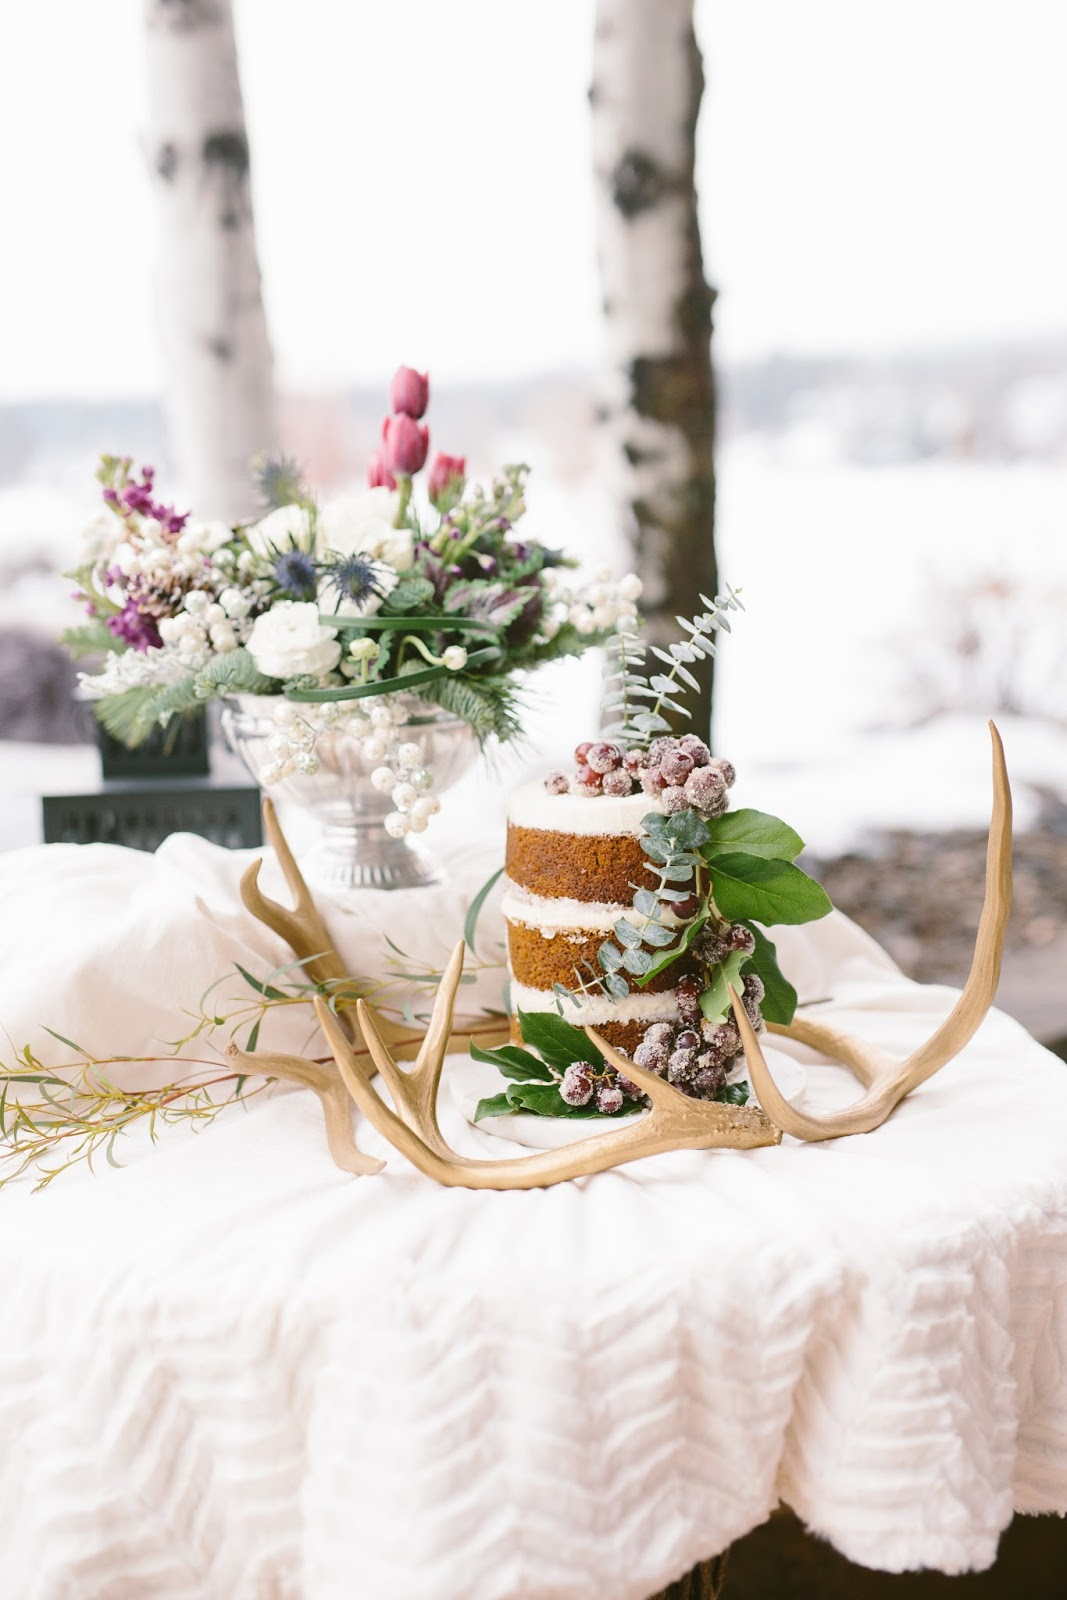 Winter wedding cake / Photography by Dina Remi